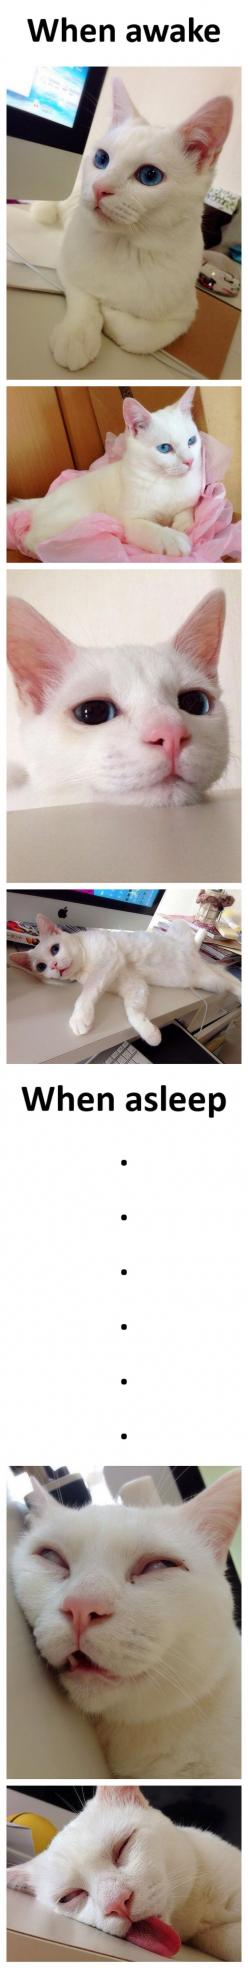 I die!!: Sleeping Beauty, Kitty Cats, Beautiful Cats, Funny Cat, Crazy Cat, Gorgeous Cat, Cat Sleeping, Cat Lady